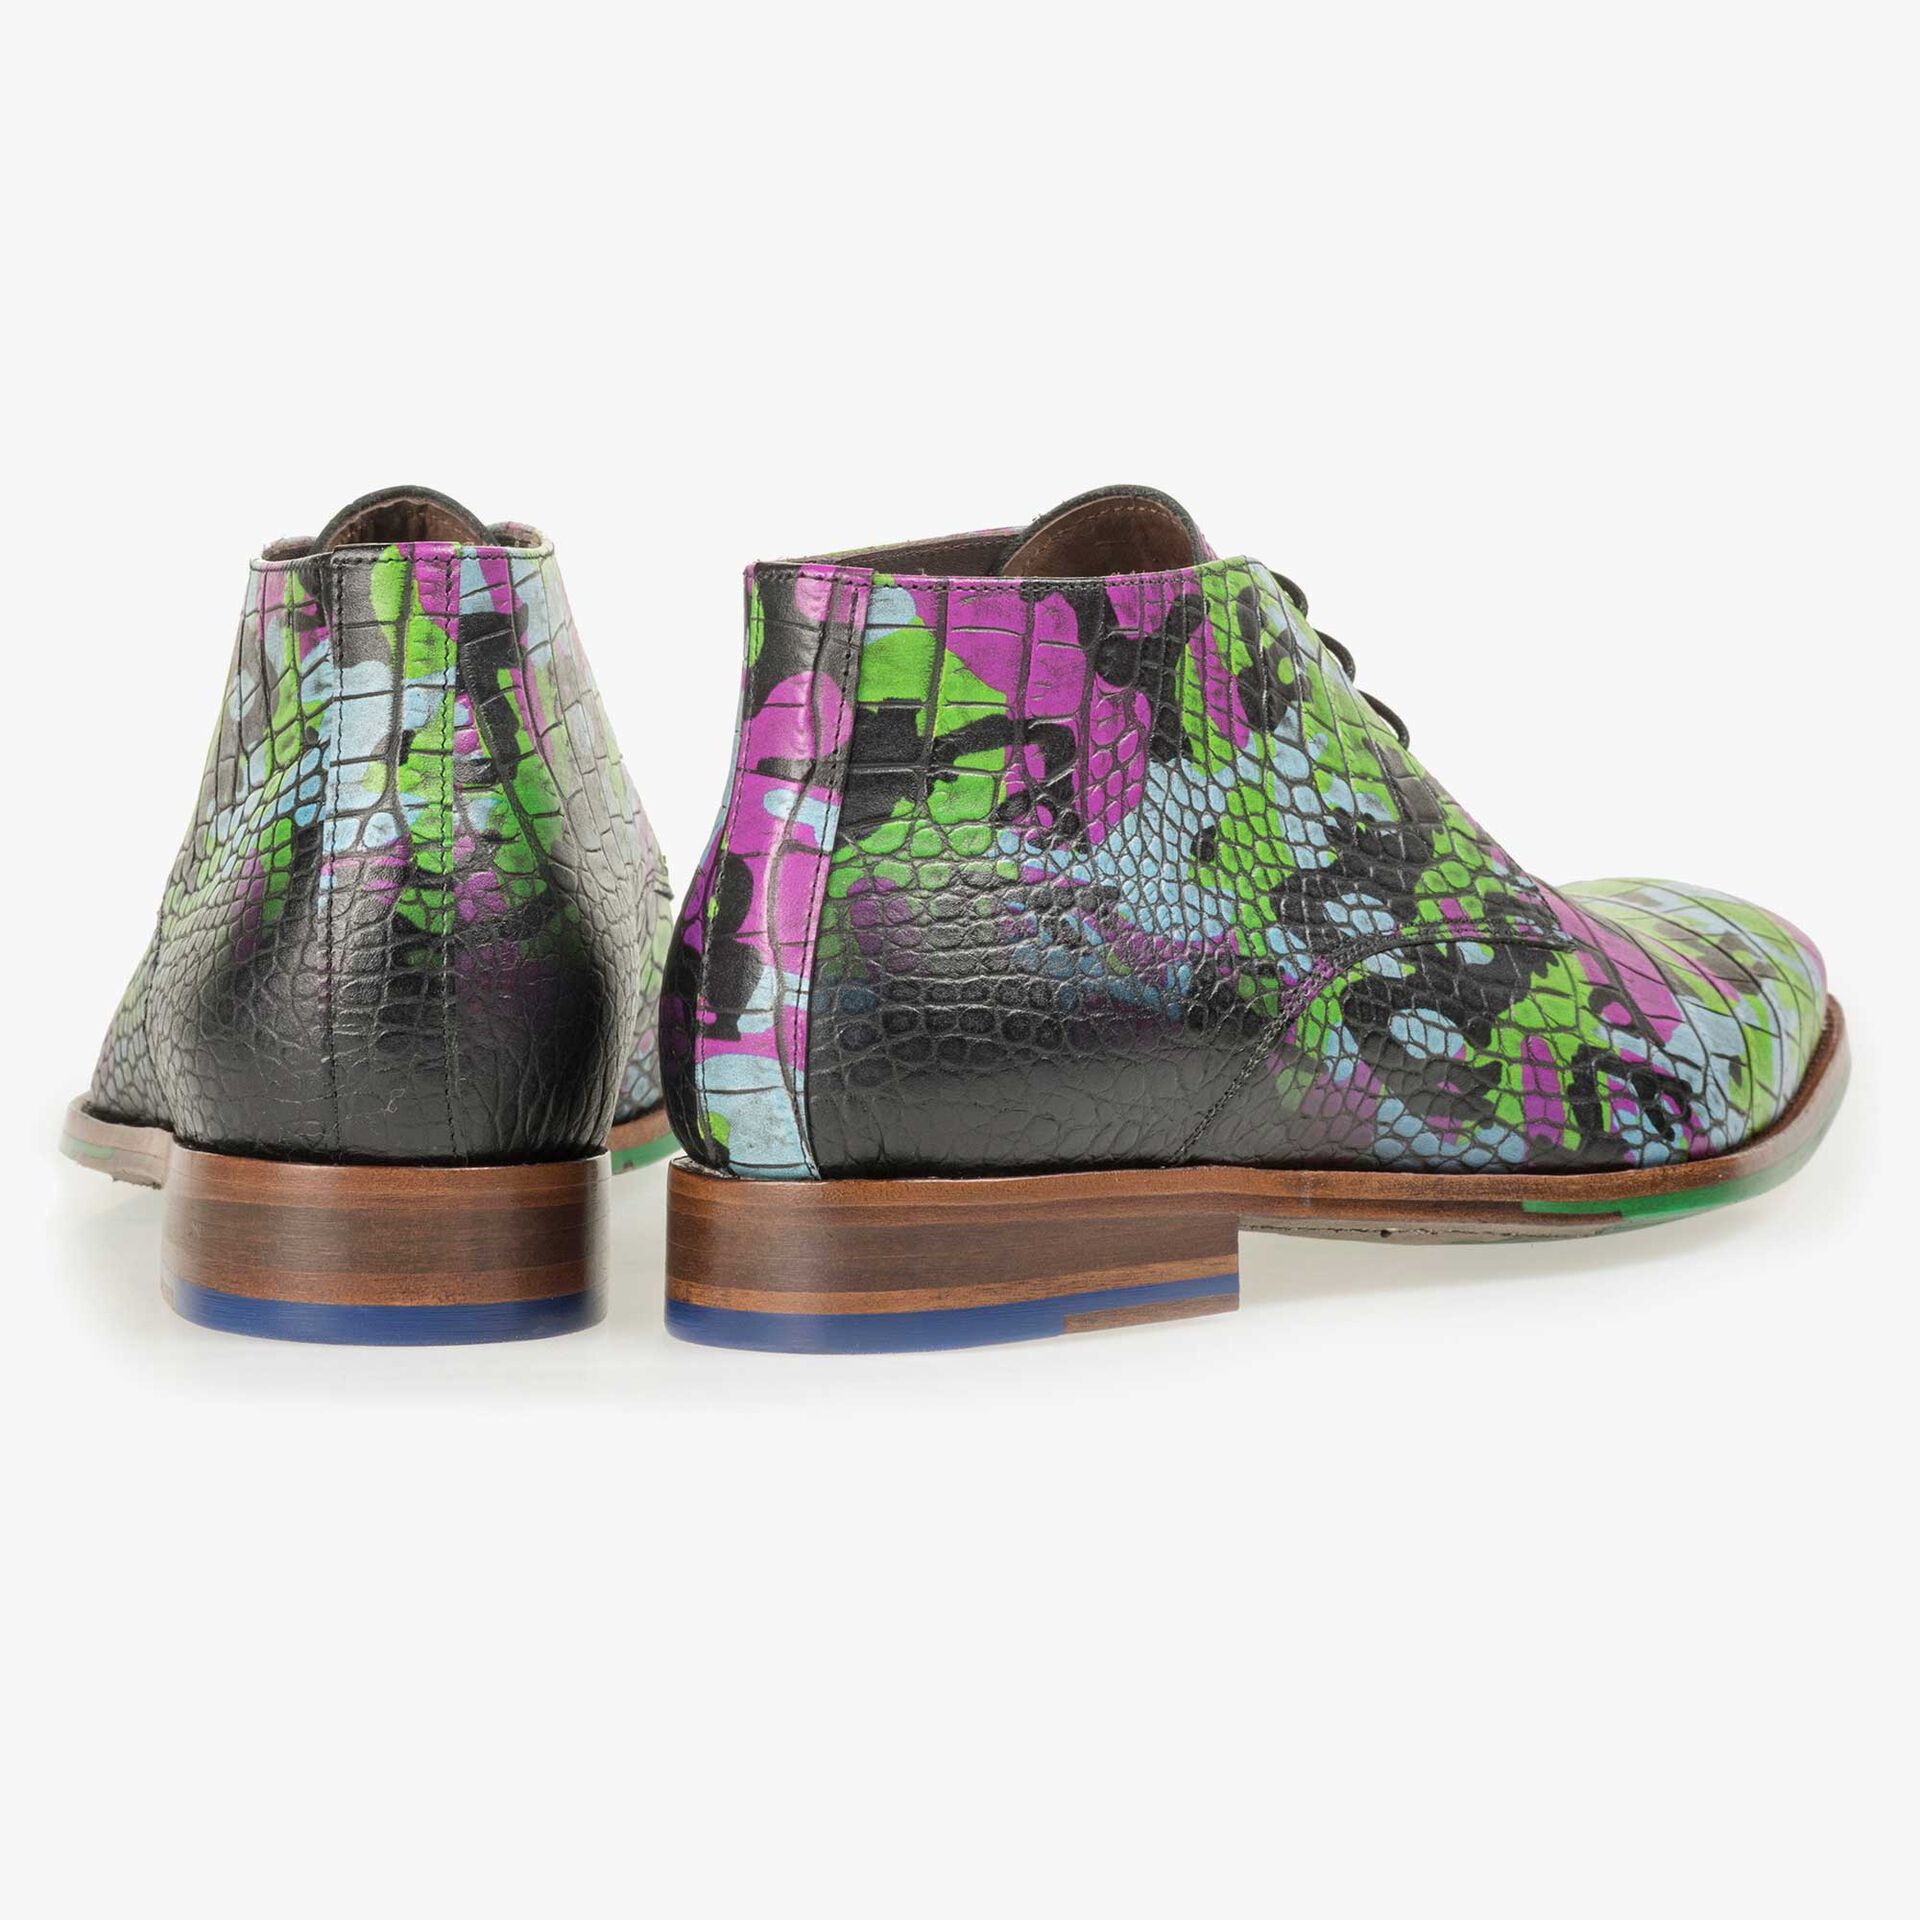 Floris van Bommel Premium men's multi-coloured croco print lace boot